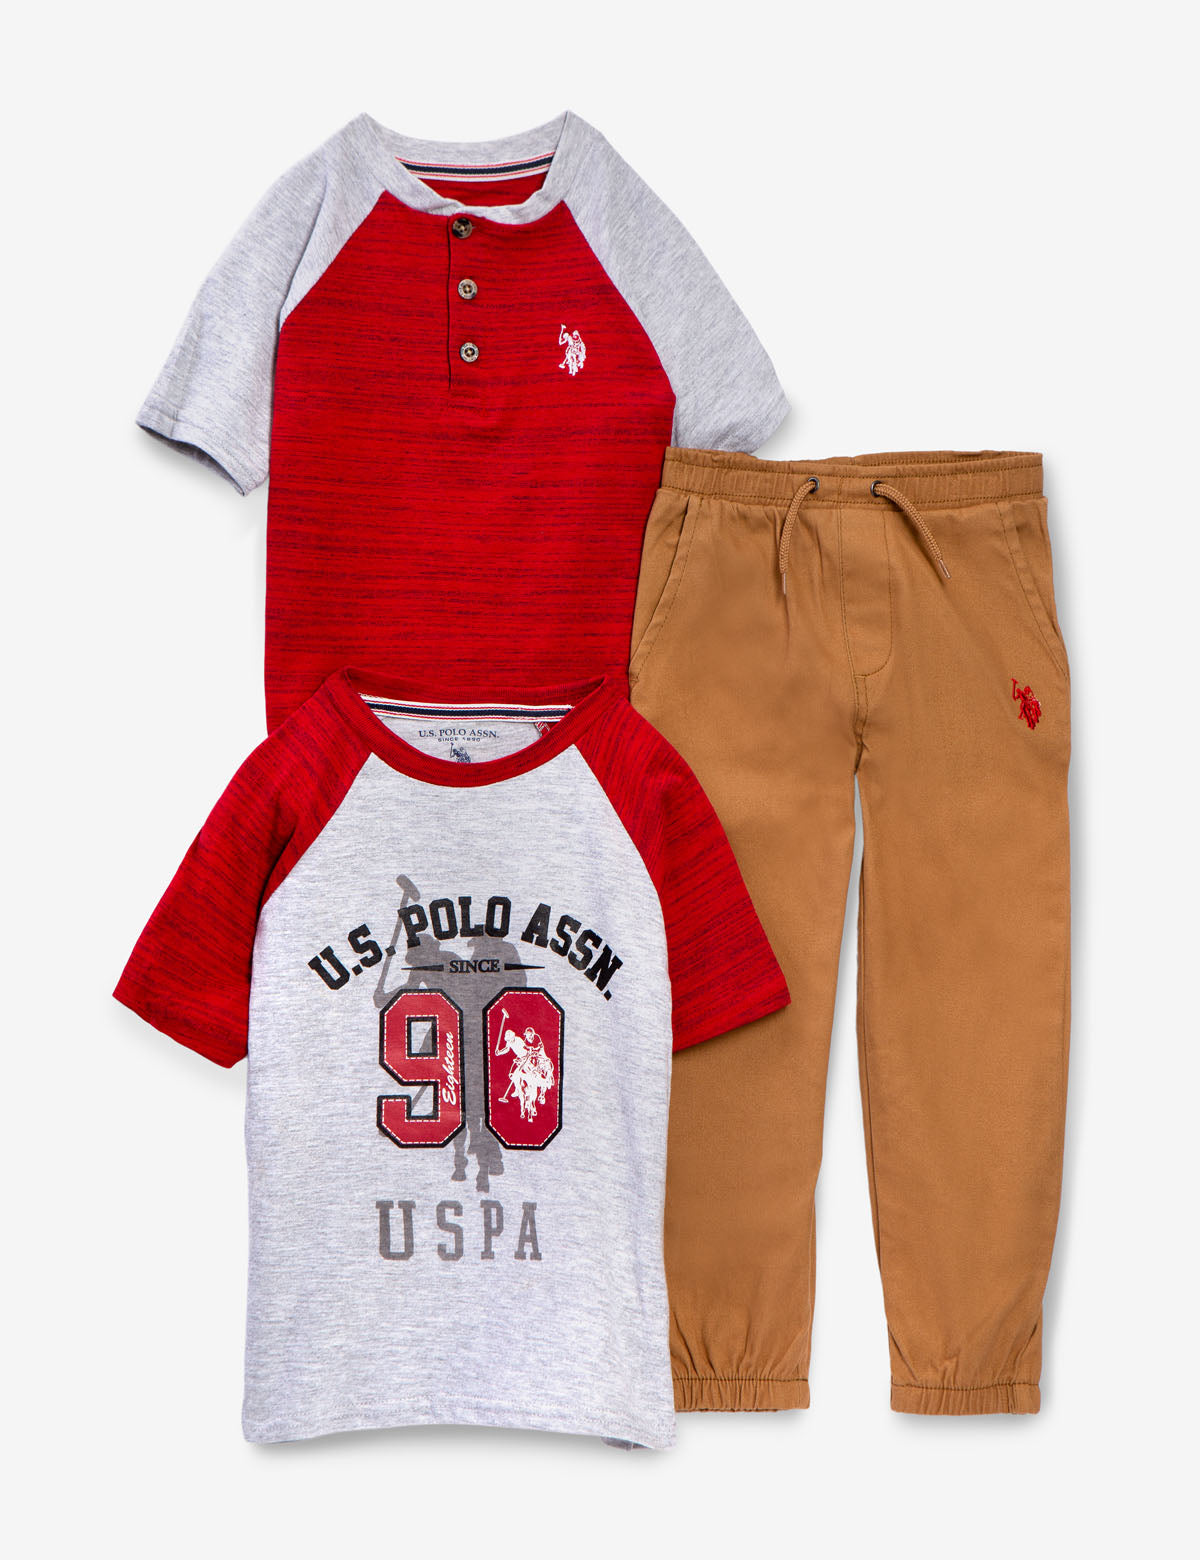 TODDLER BOY'S 3 PIECE SET - TEES & JOGGERS